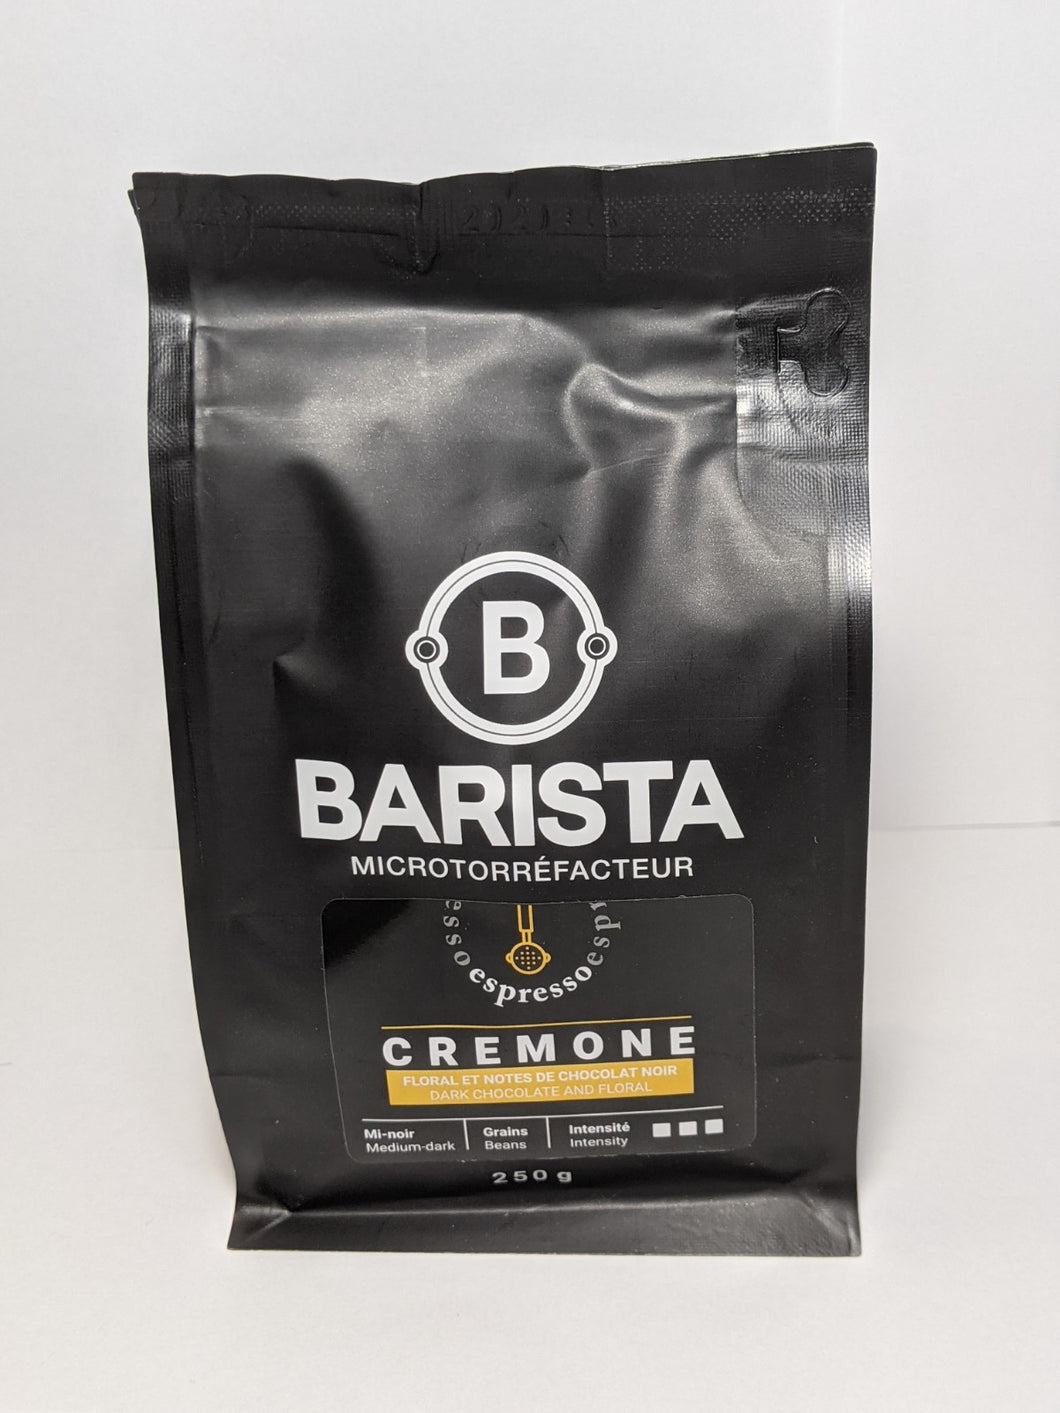 Barista - Cremone - Grains